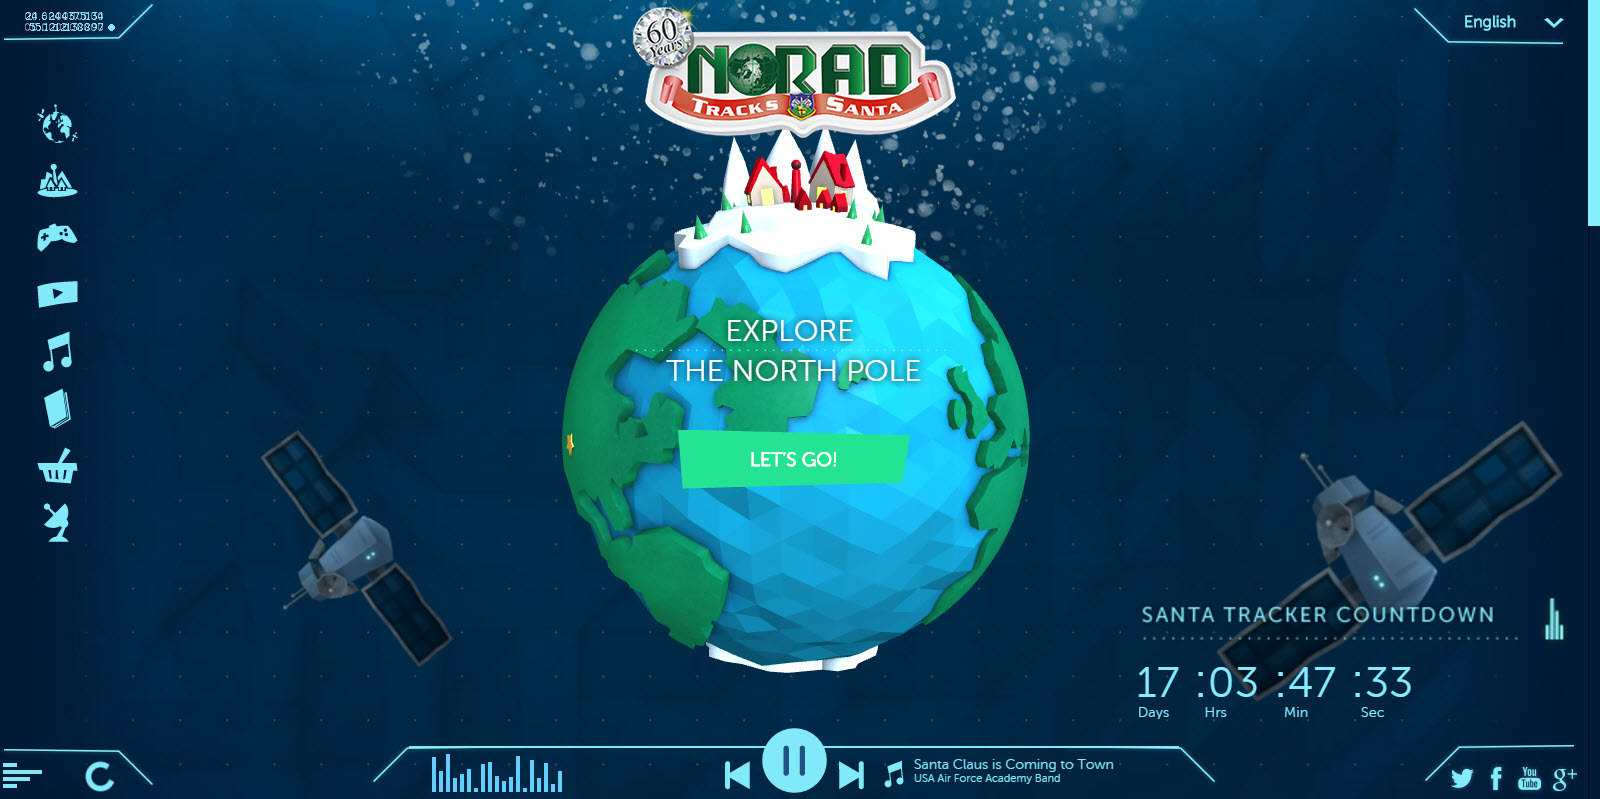 NORAD marks 60 years of tracking Santa, is ready for Christmas 2015